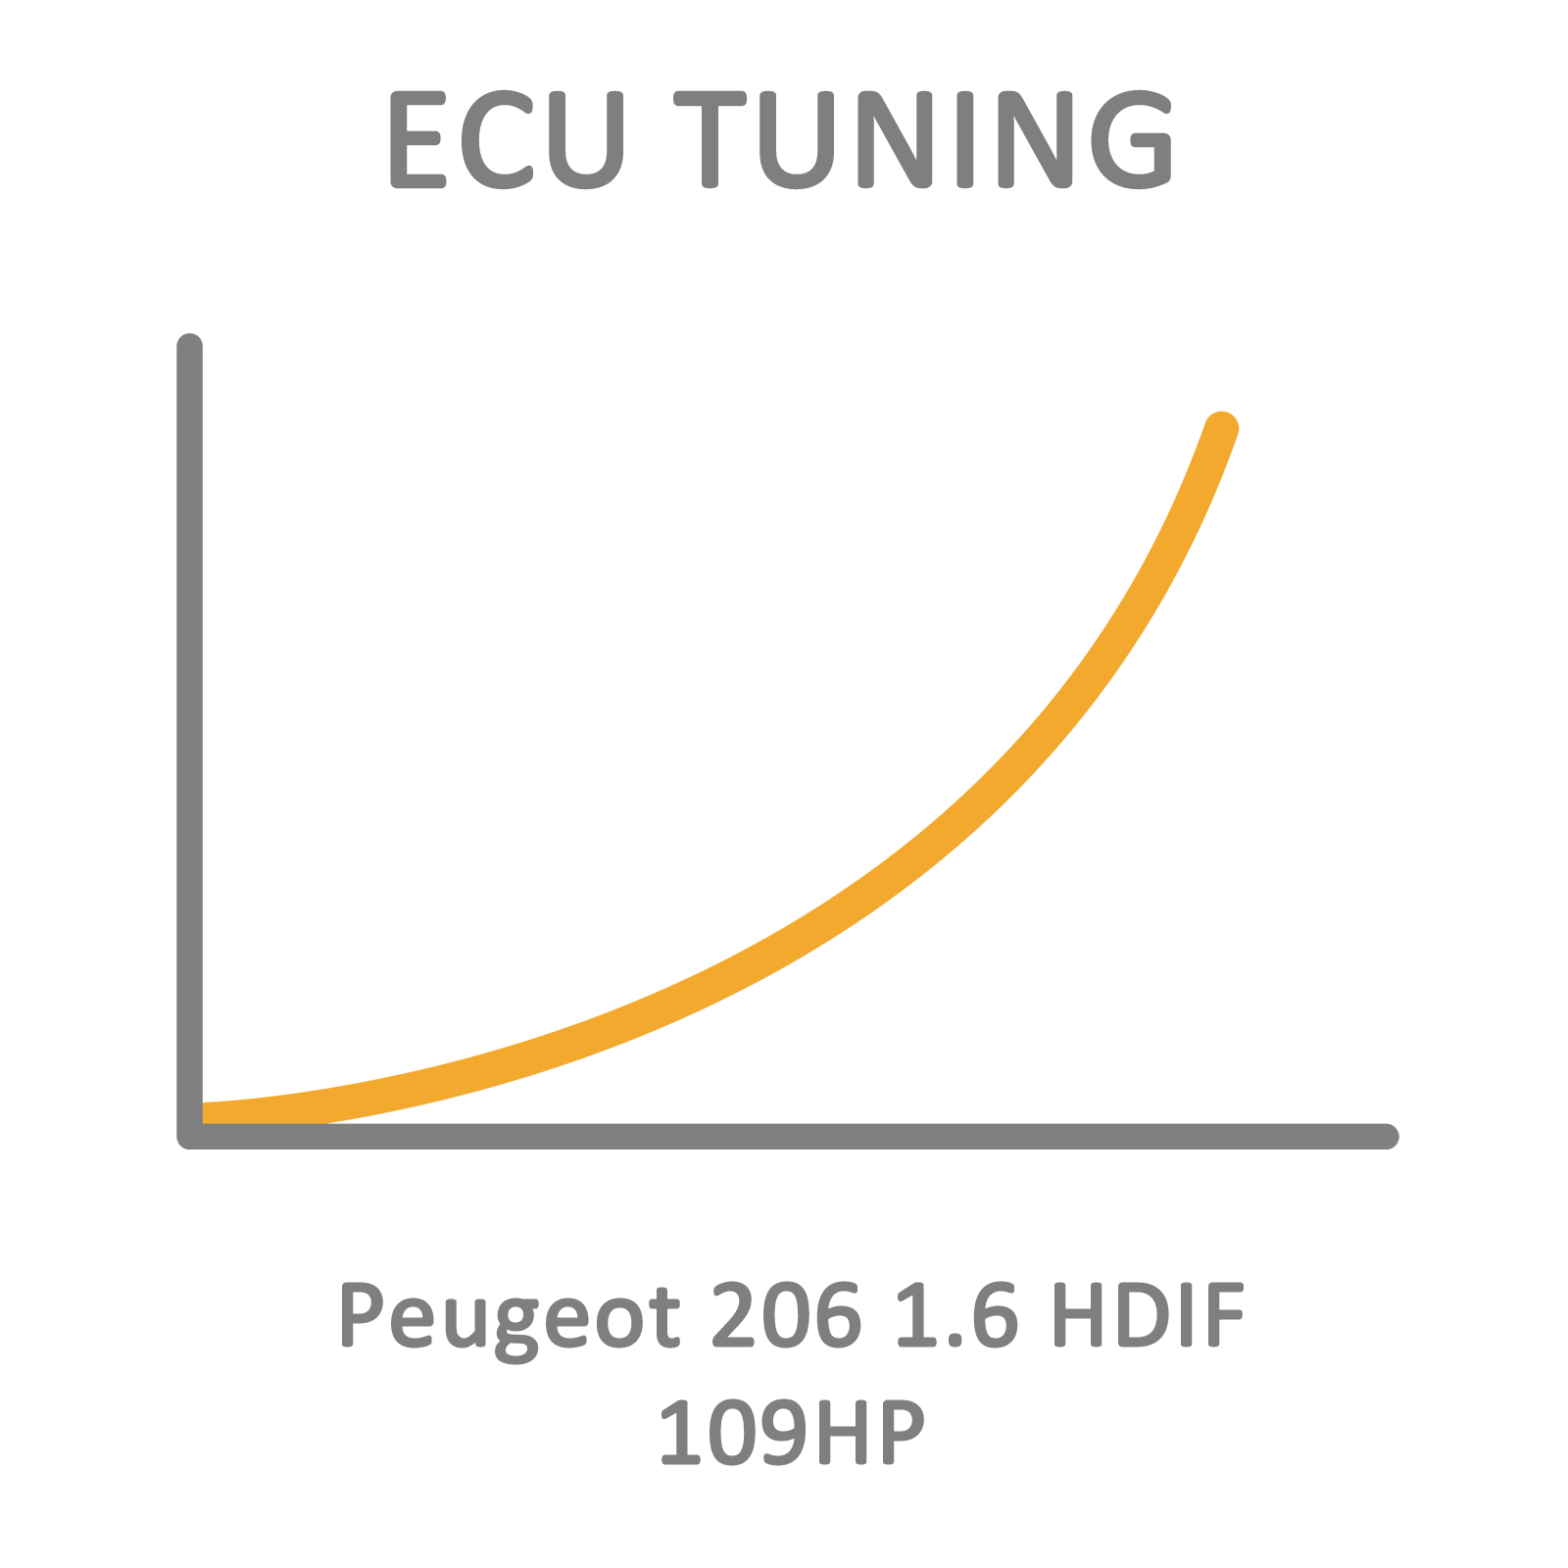 Peugeot 206 1.6 HDIF 109HP ECU Tuning Remapping Programming